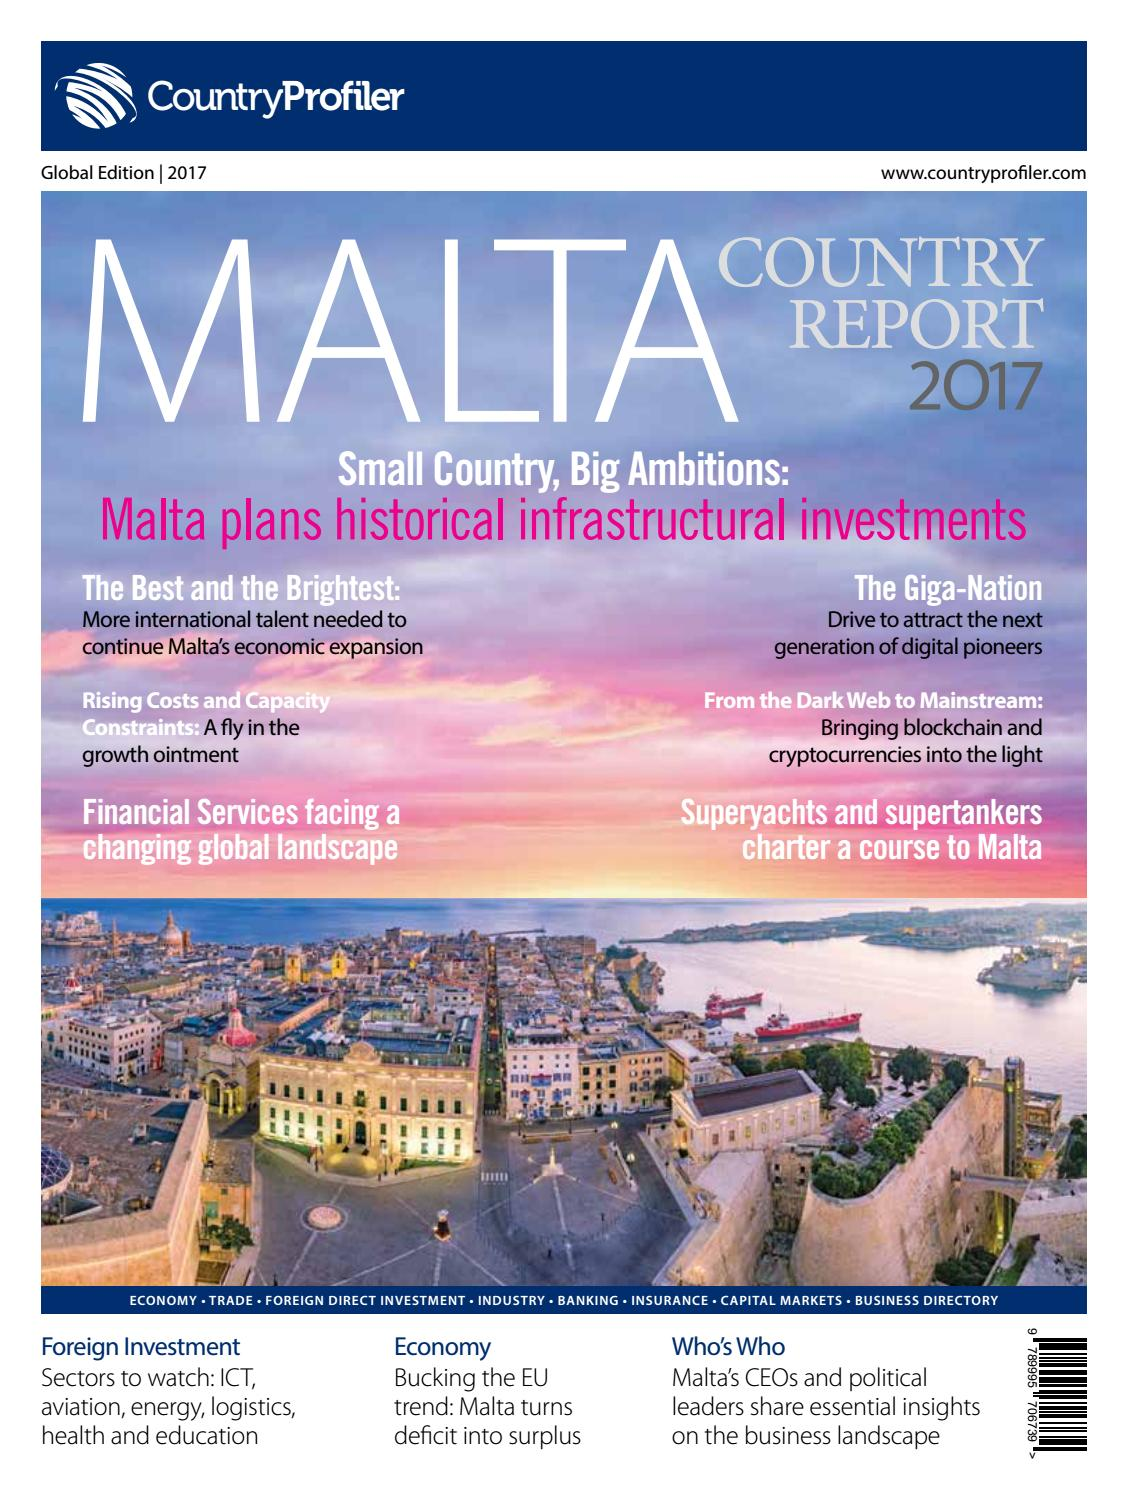 Malta Country Report 2017 By Countryprofiler Issuu Rejected Circuit Boards With Lpi Direct Recycling Inc